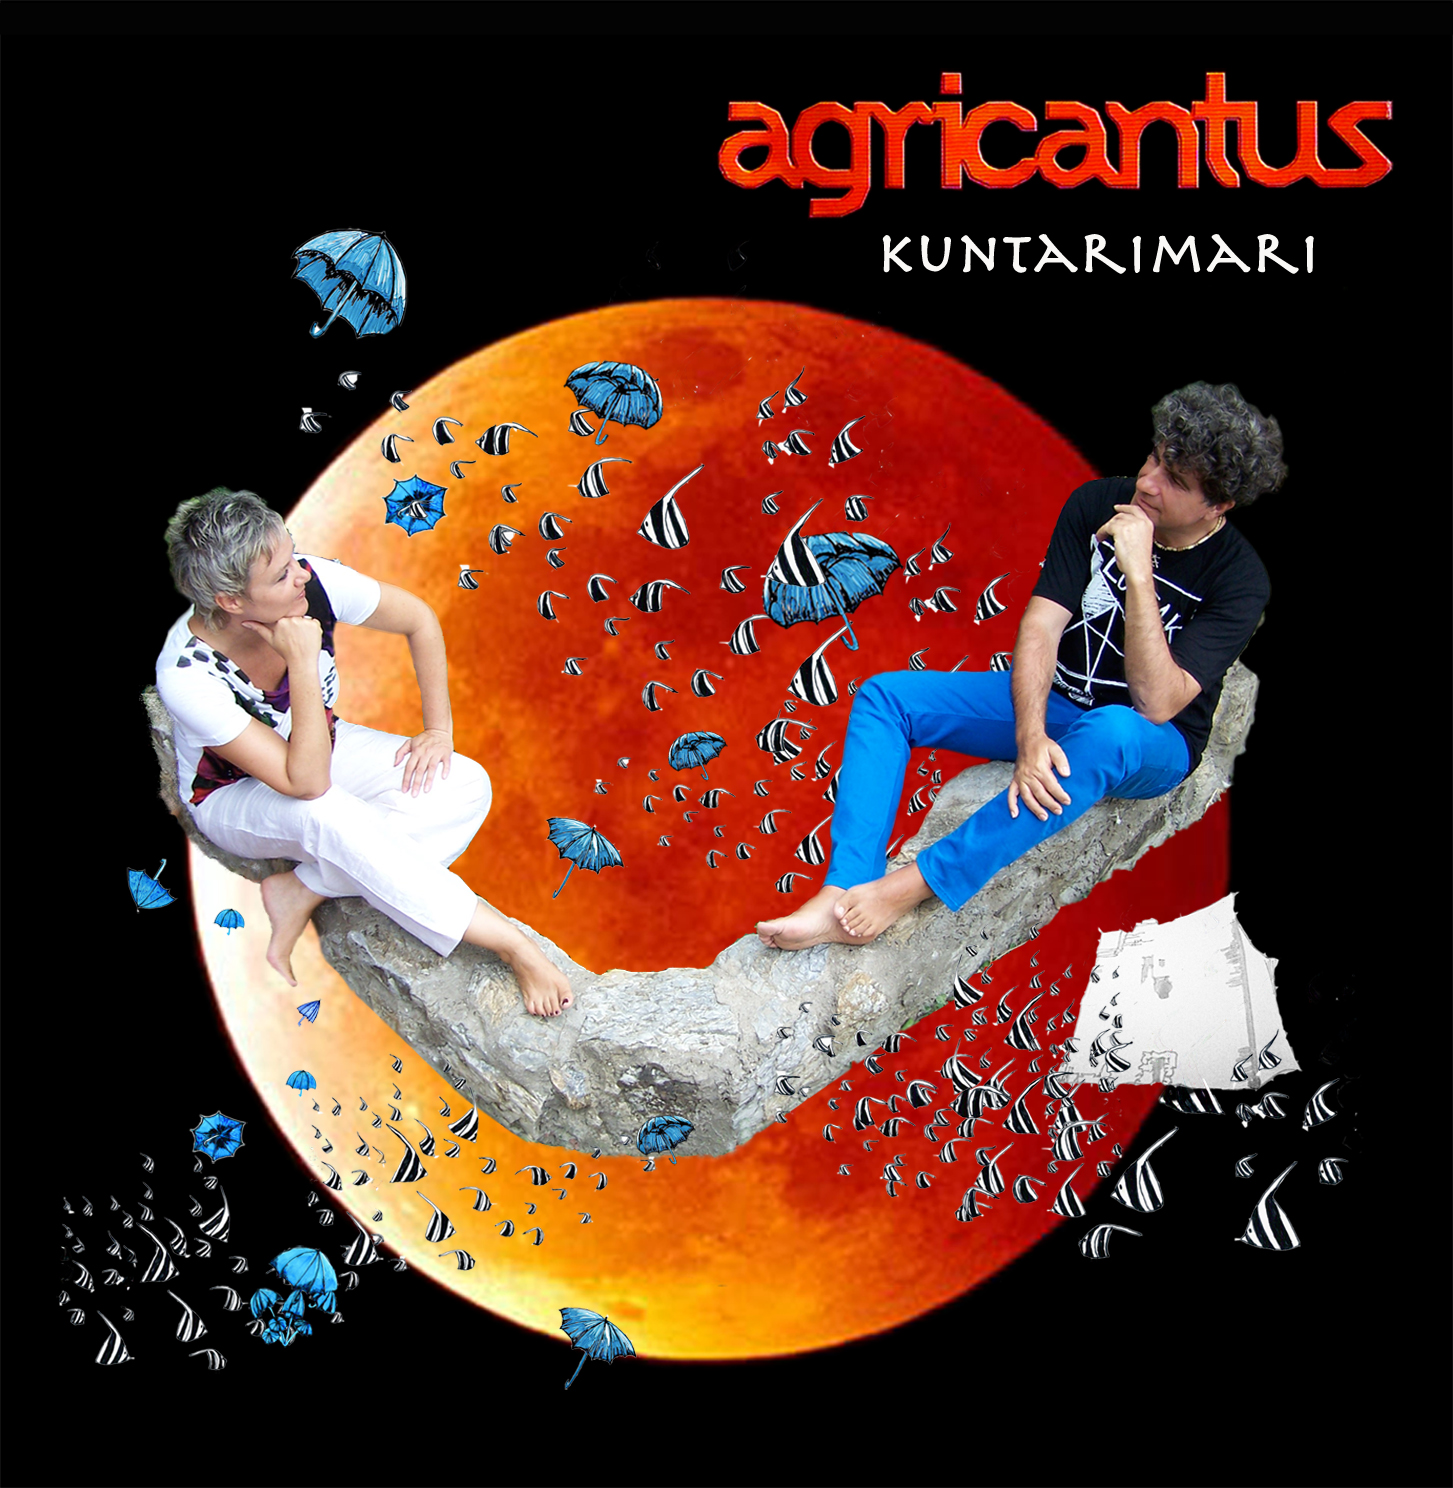 Agricantus Net Worth